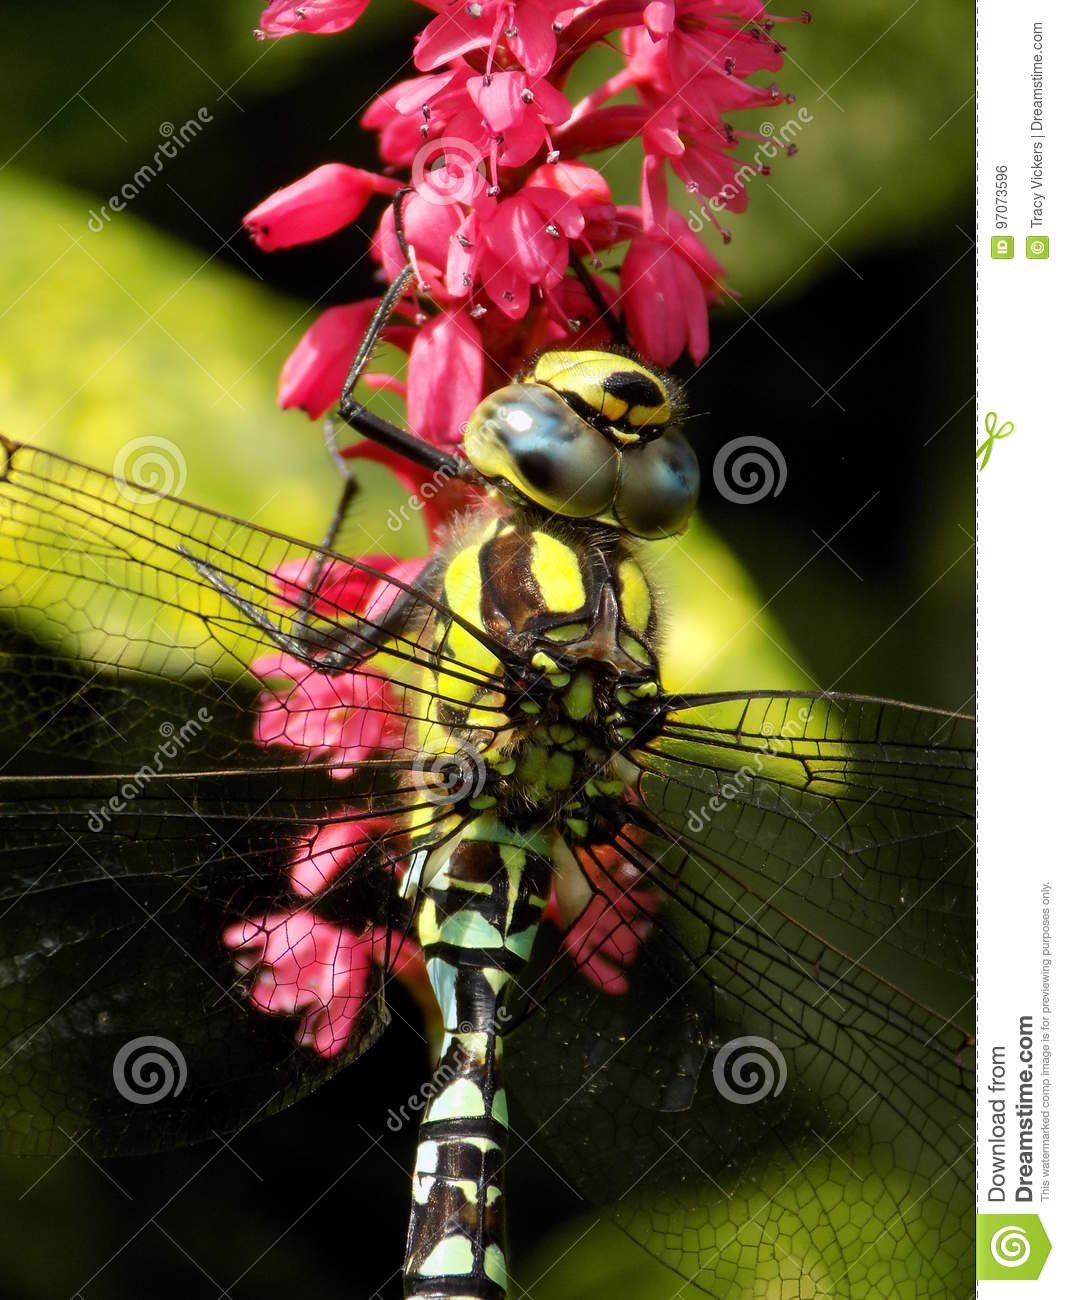 Male Common Southern Hawker dragonfly